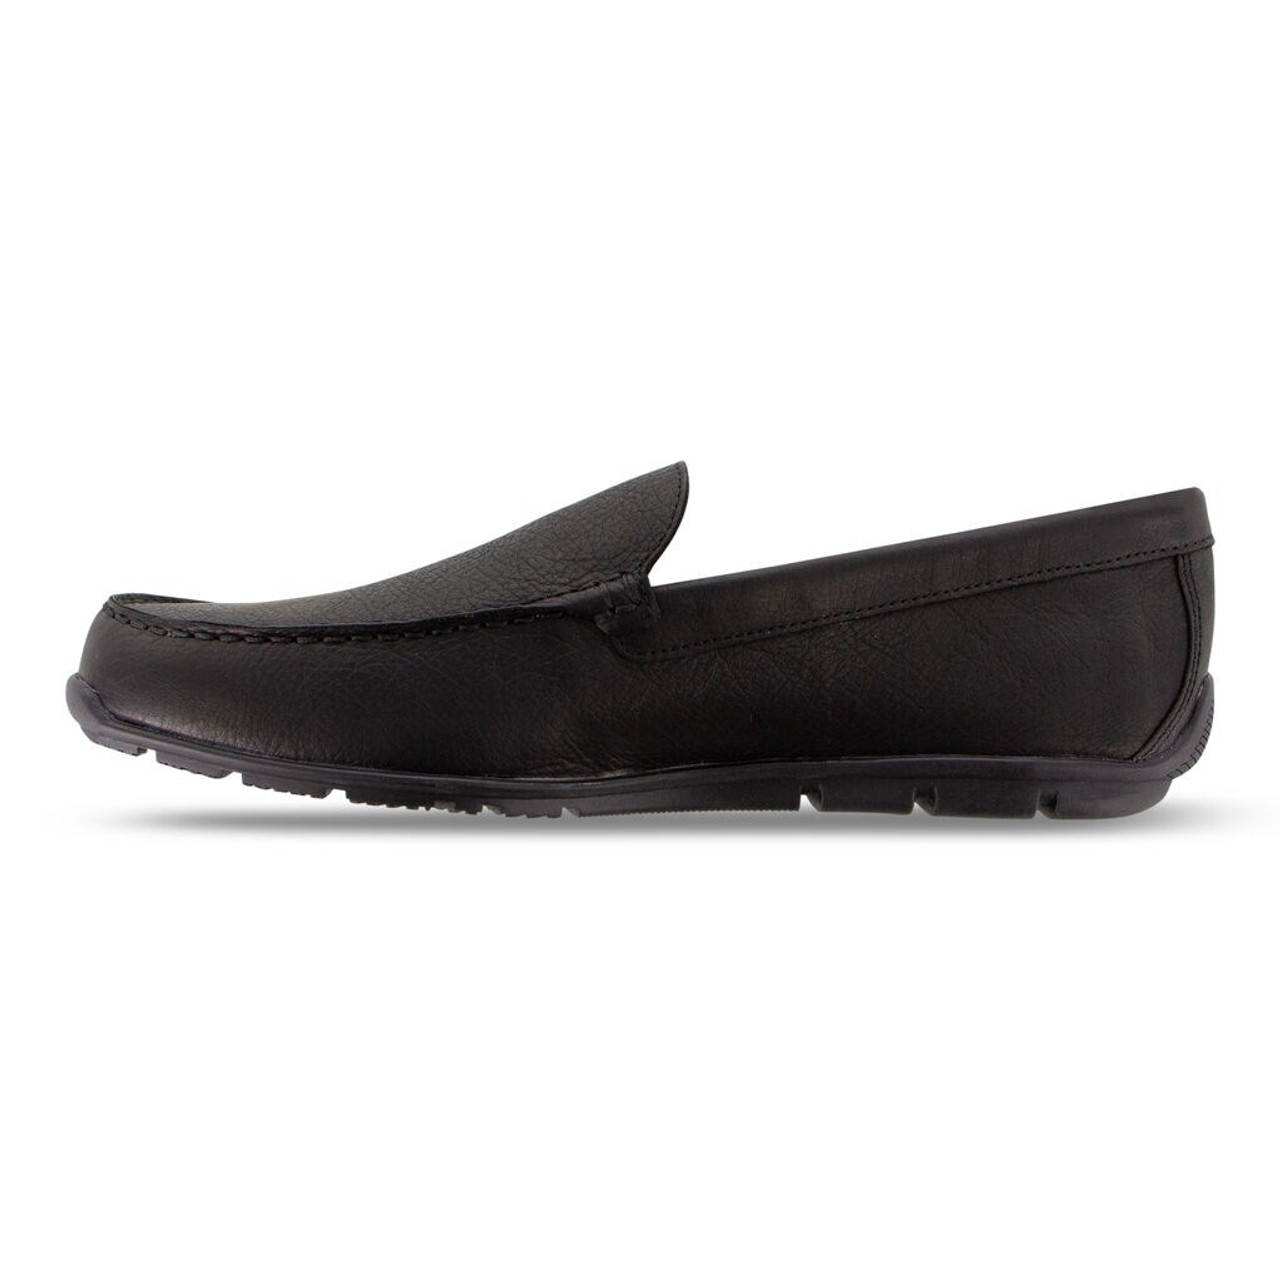 FootJoy Club Casuals Loafers - Black (79061)